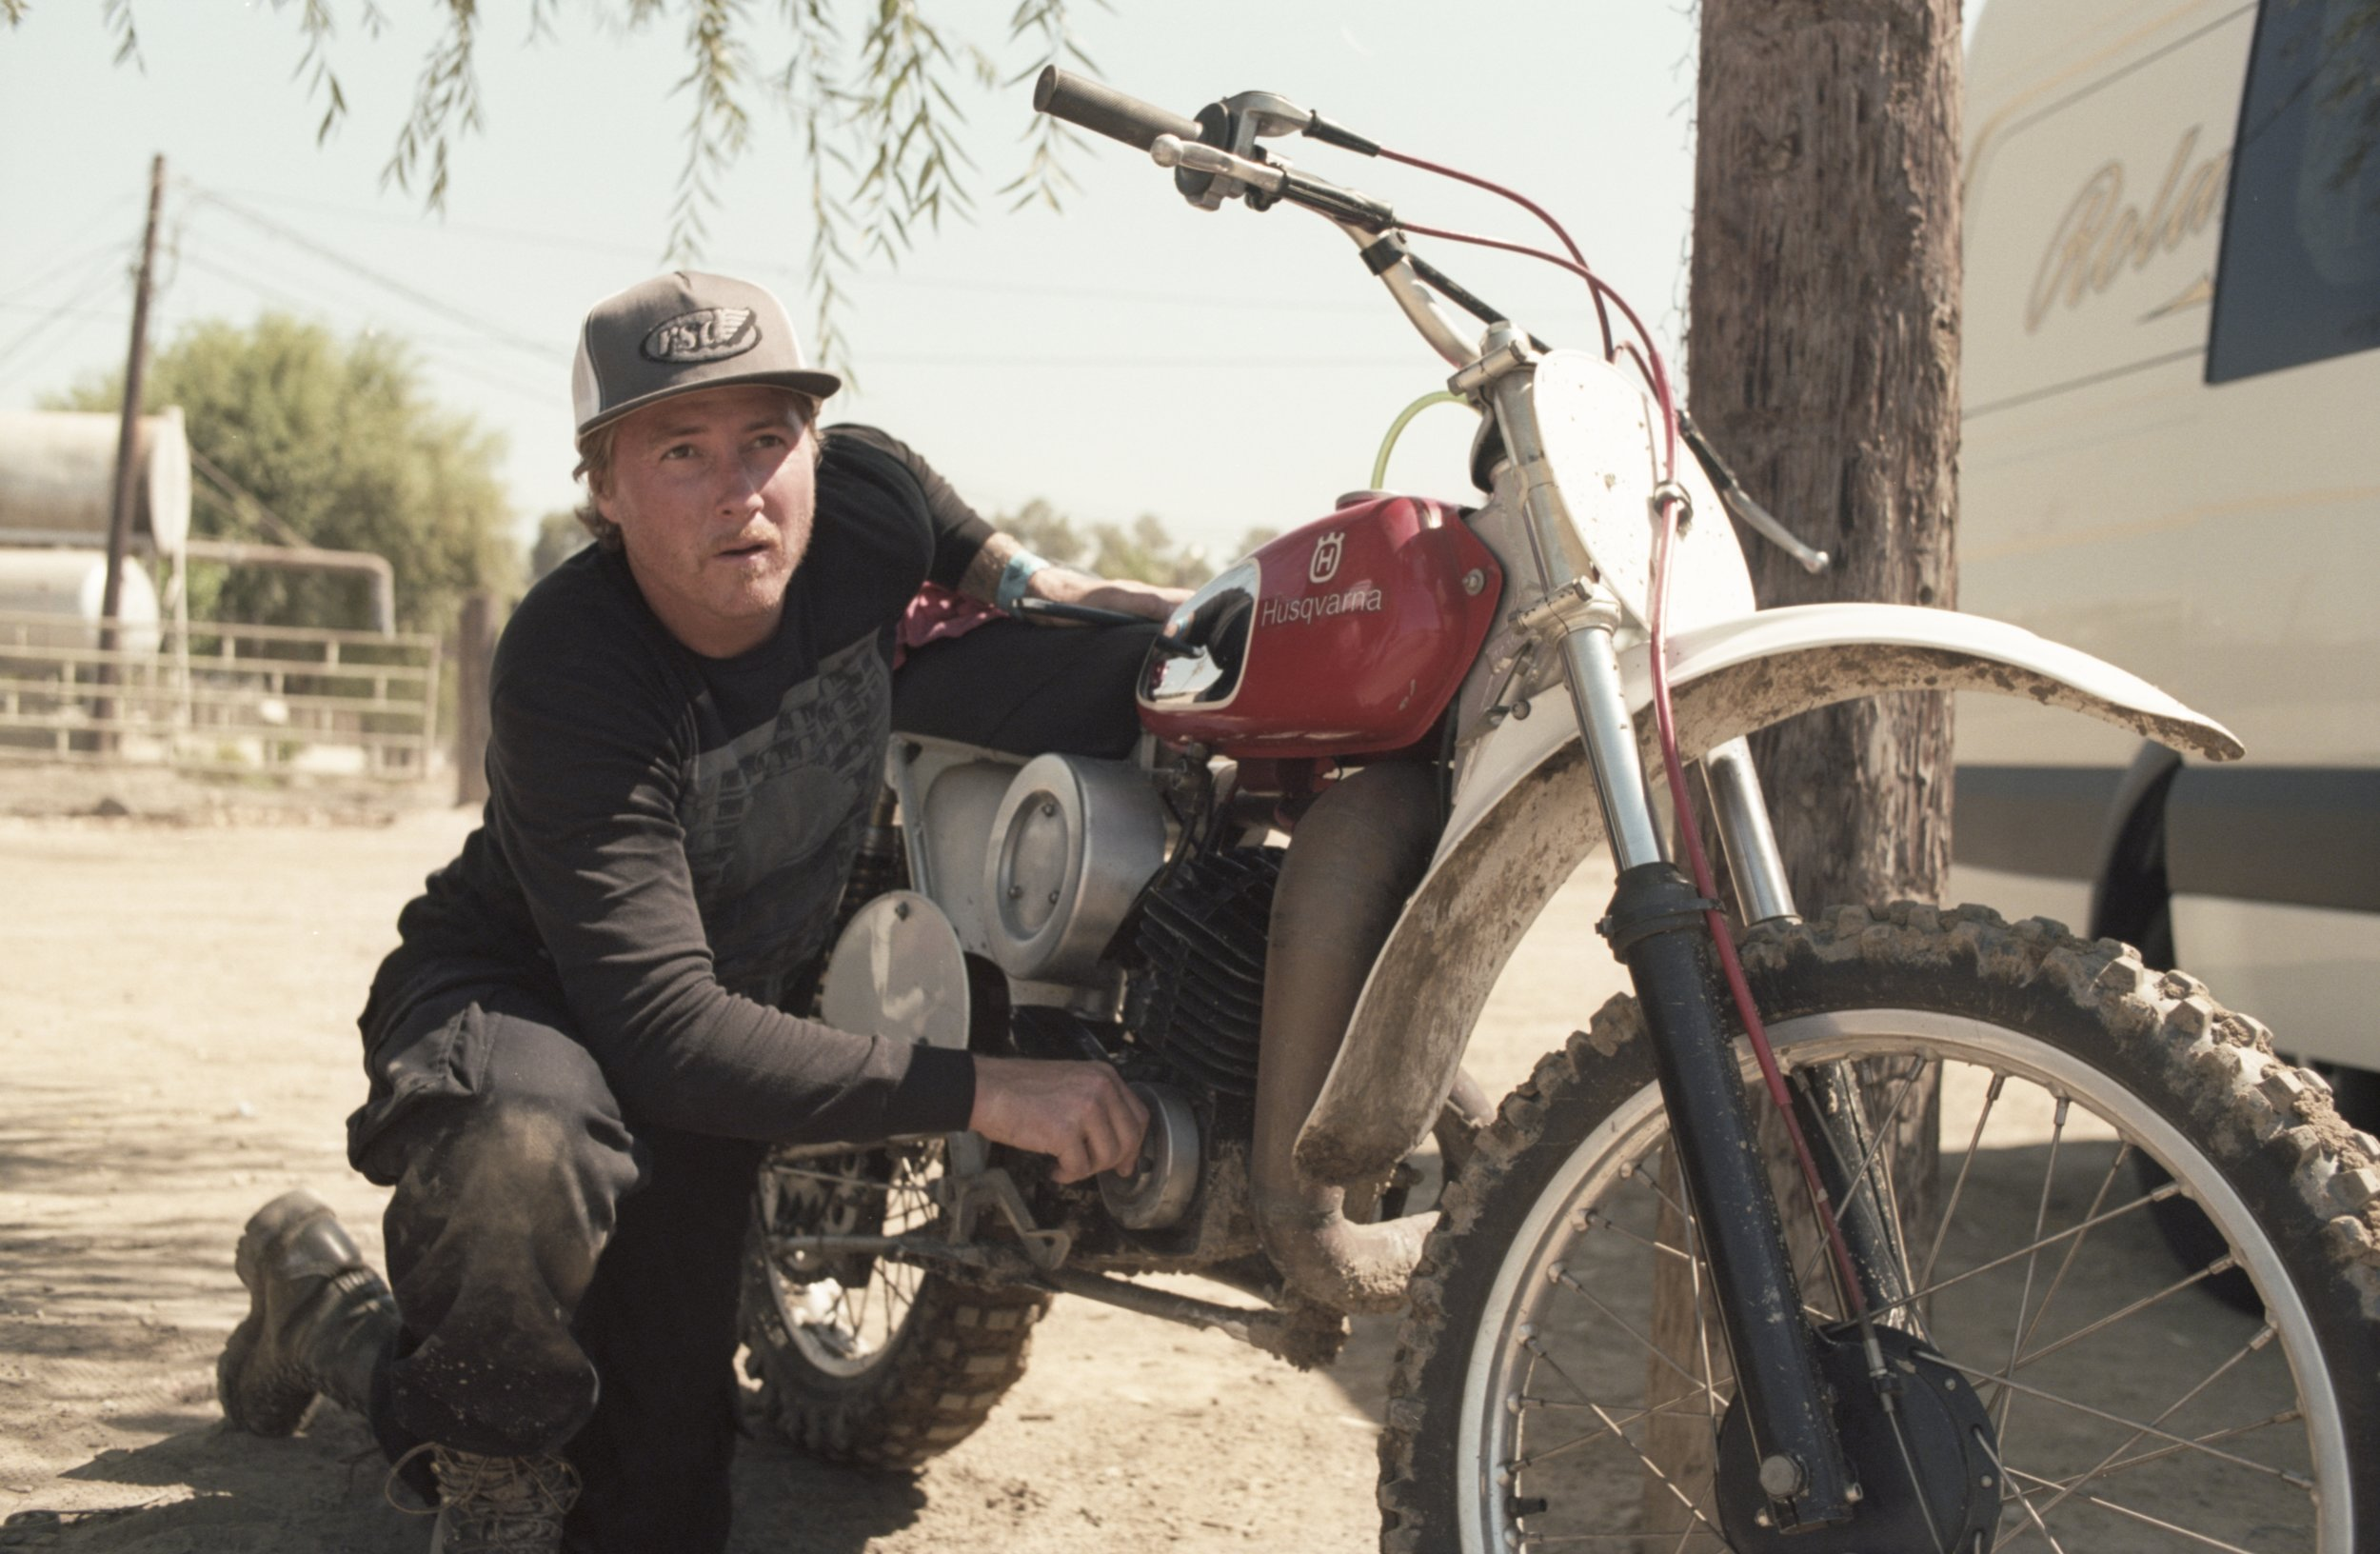 7 - Roland Sands fixing the Husky_resultat.jpg